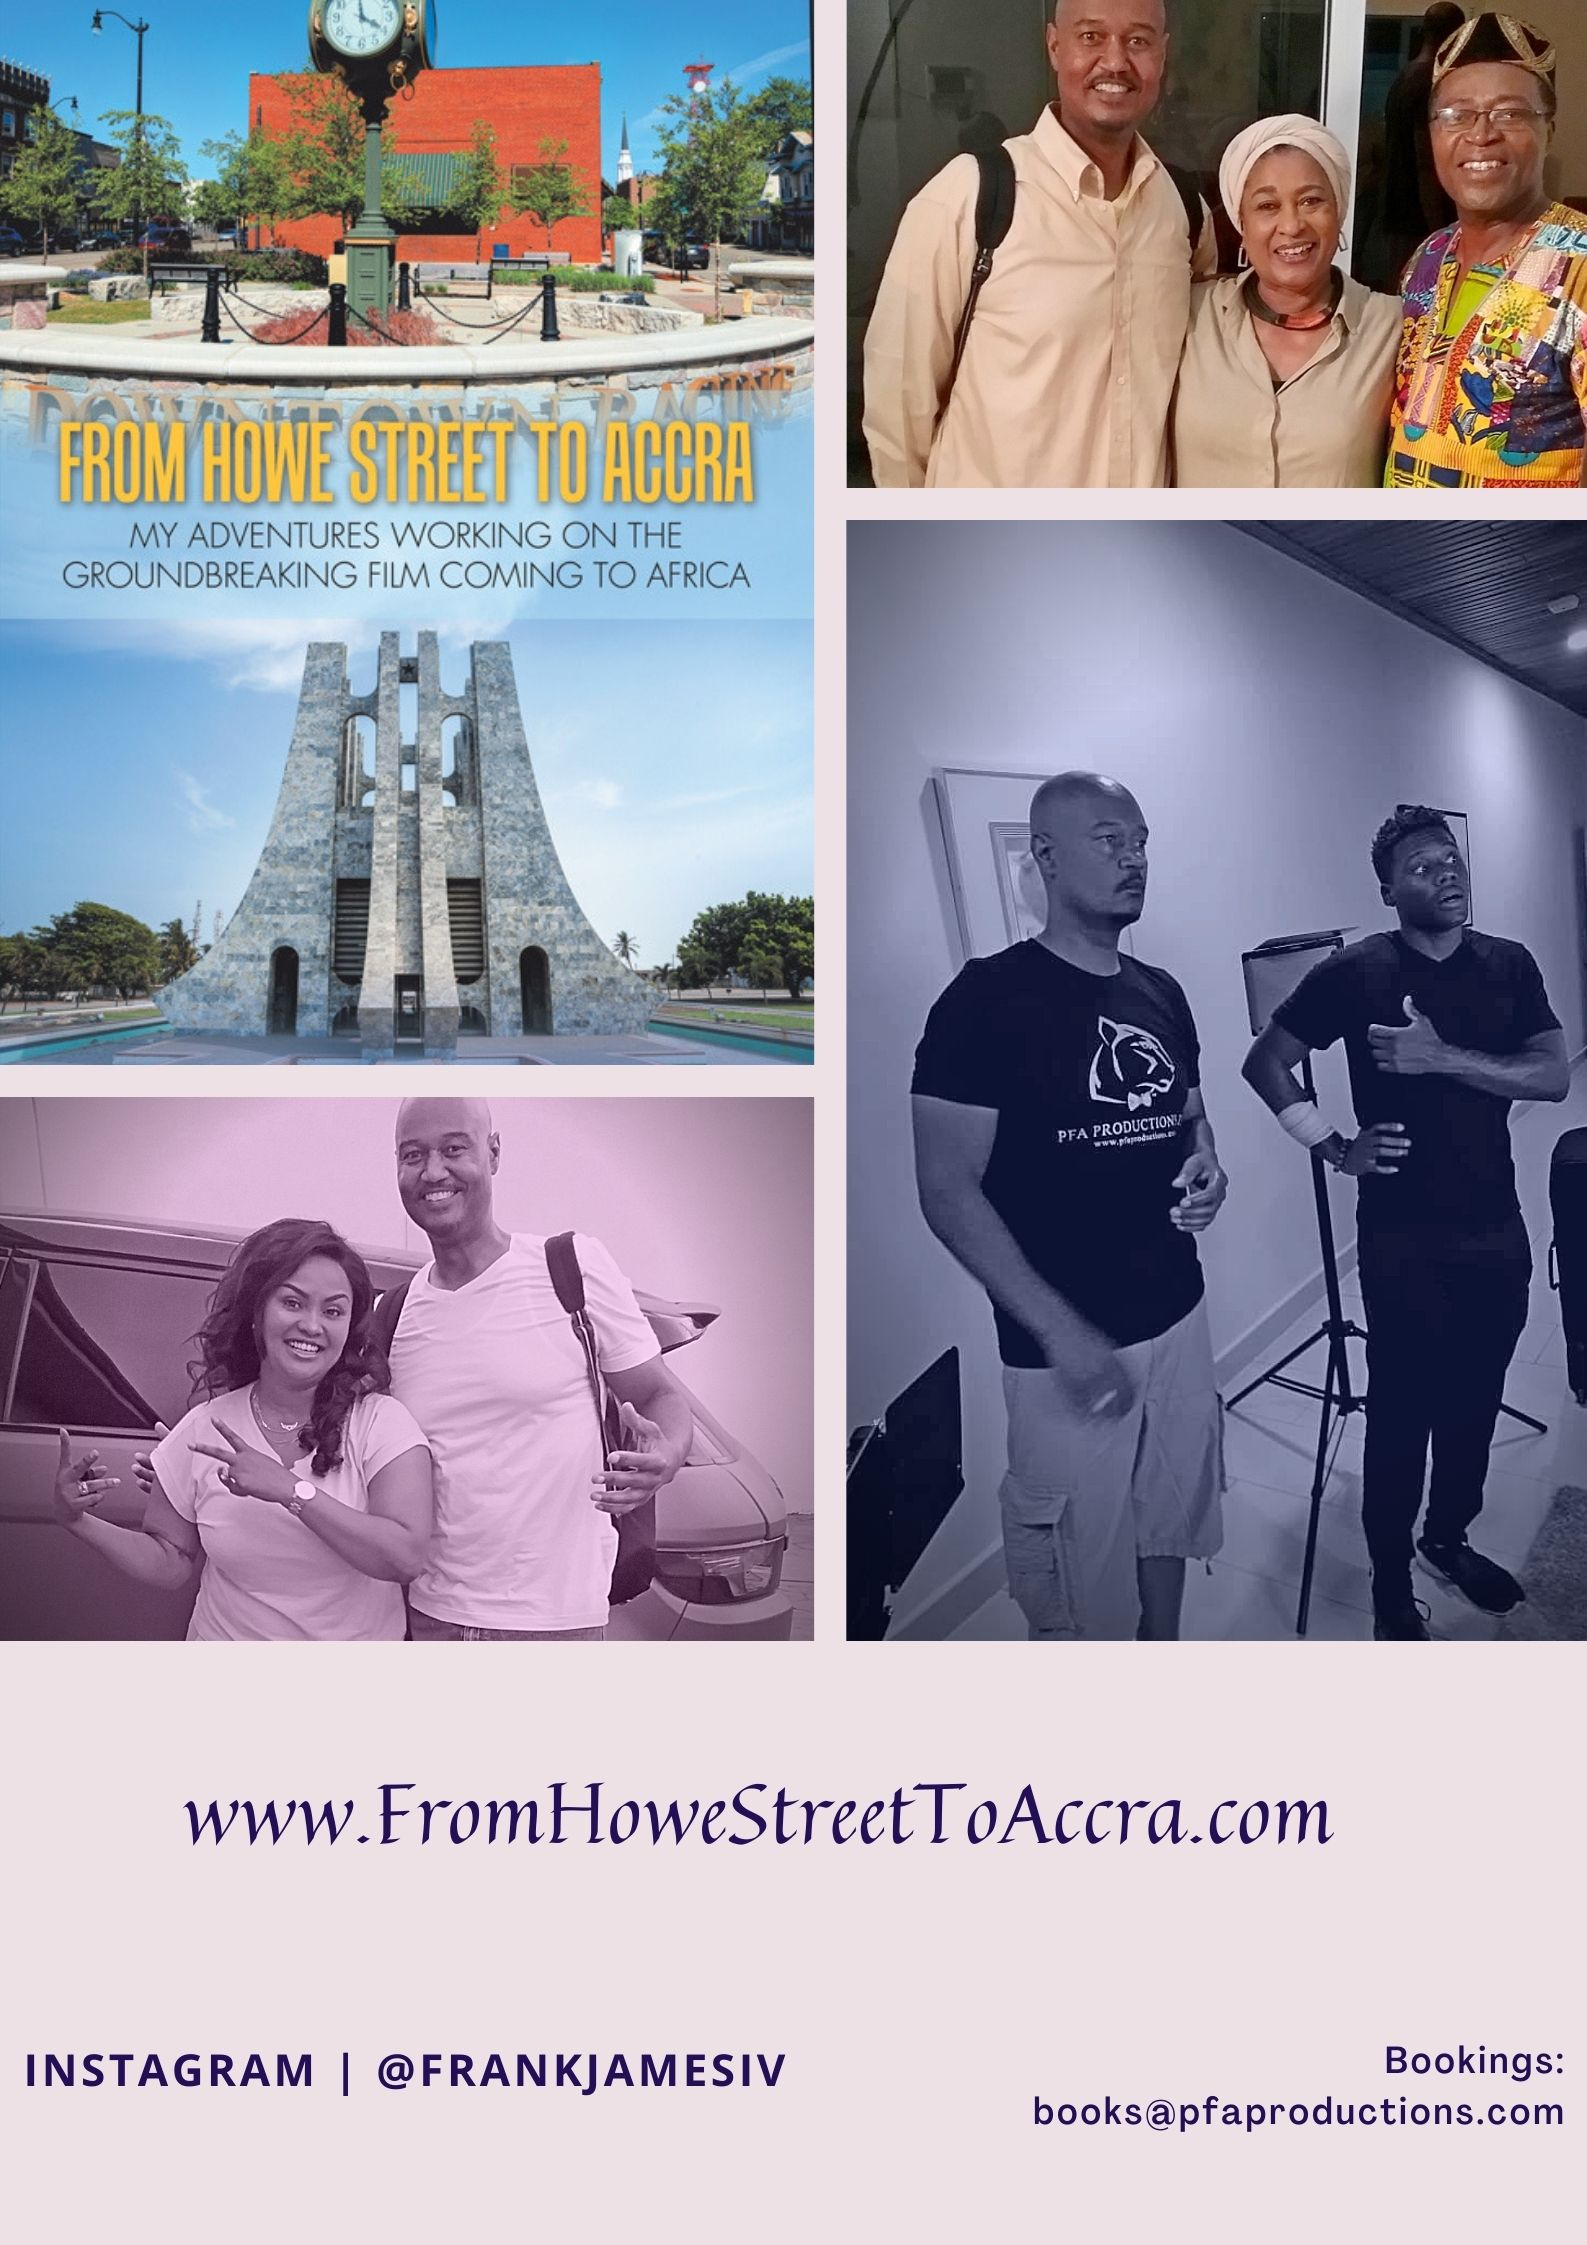 """Frank James IV Releases His Latest Book """"From Howe Street To Accra"""""""